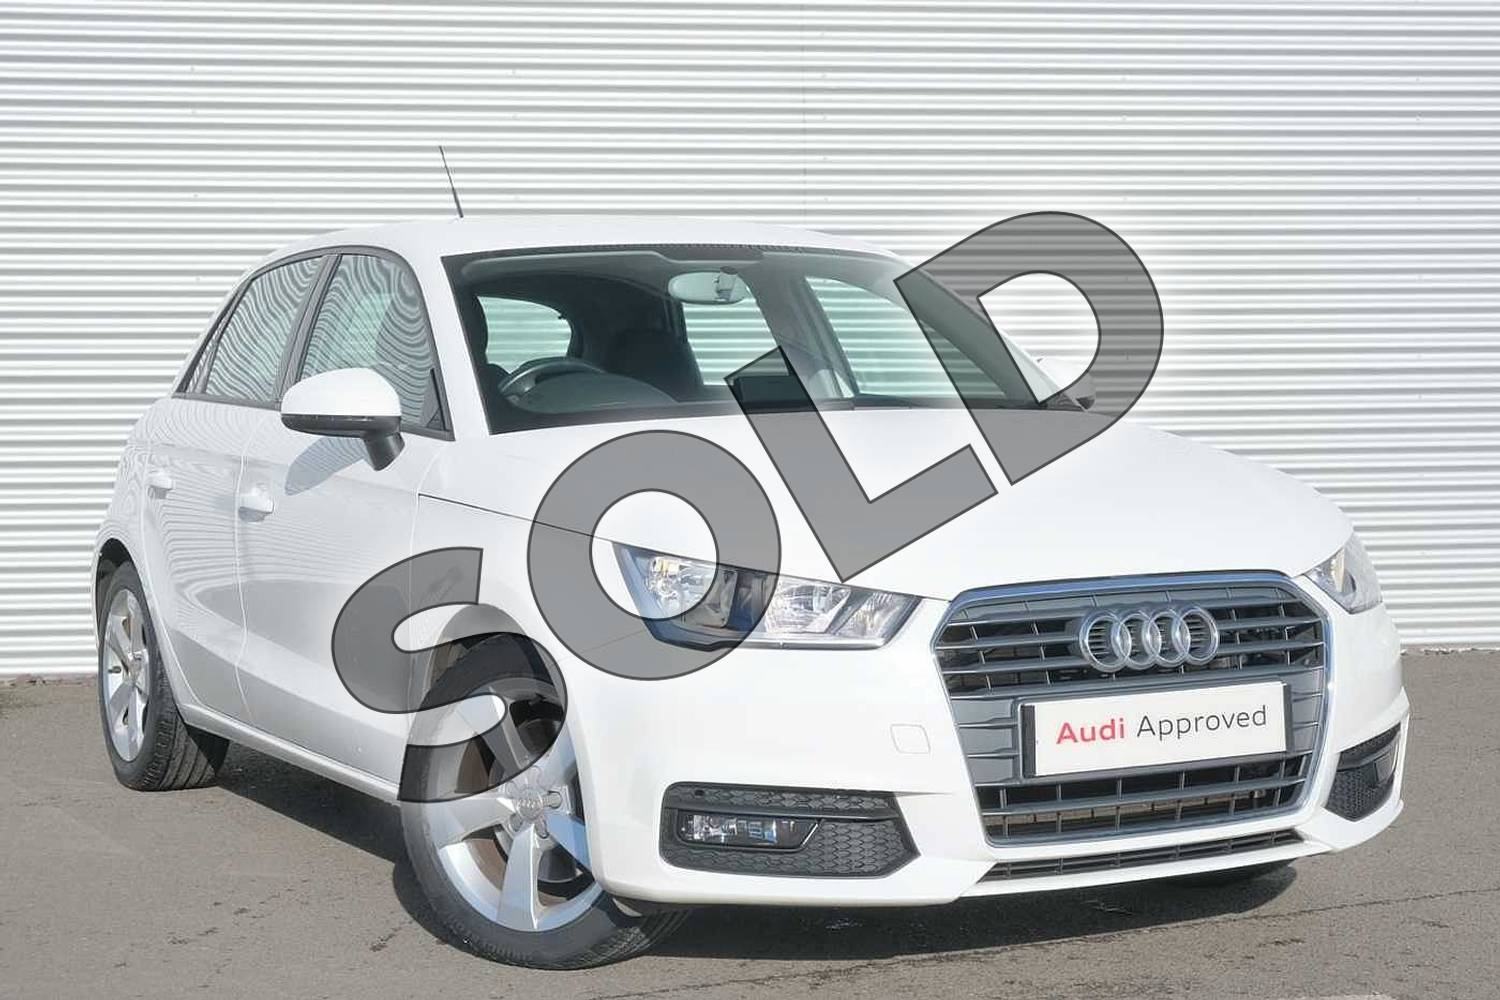 2017 Audi A1 Sportback 1.4 TFSI Sport 5dr in Shell White at Coventry Audi